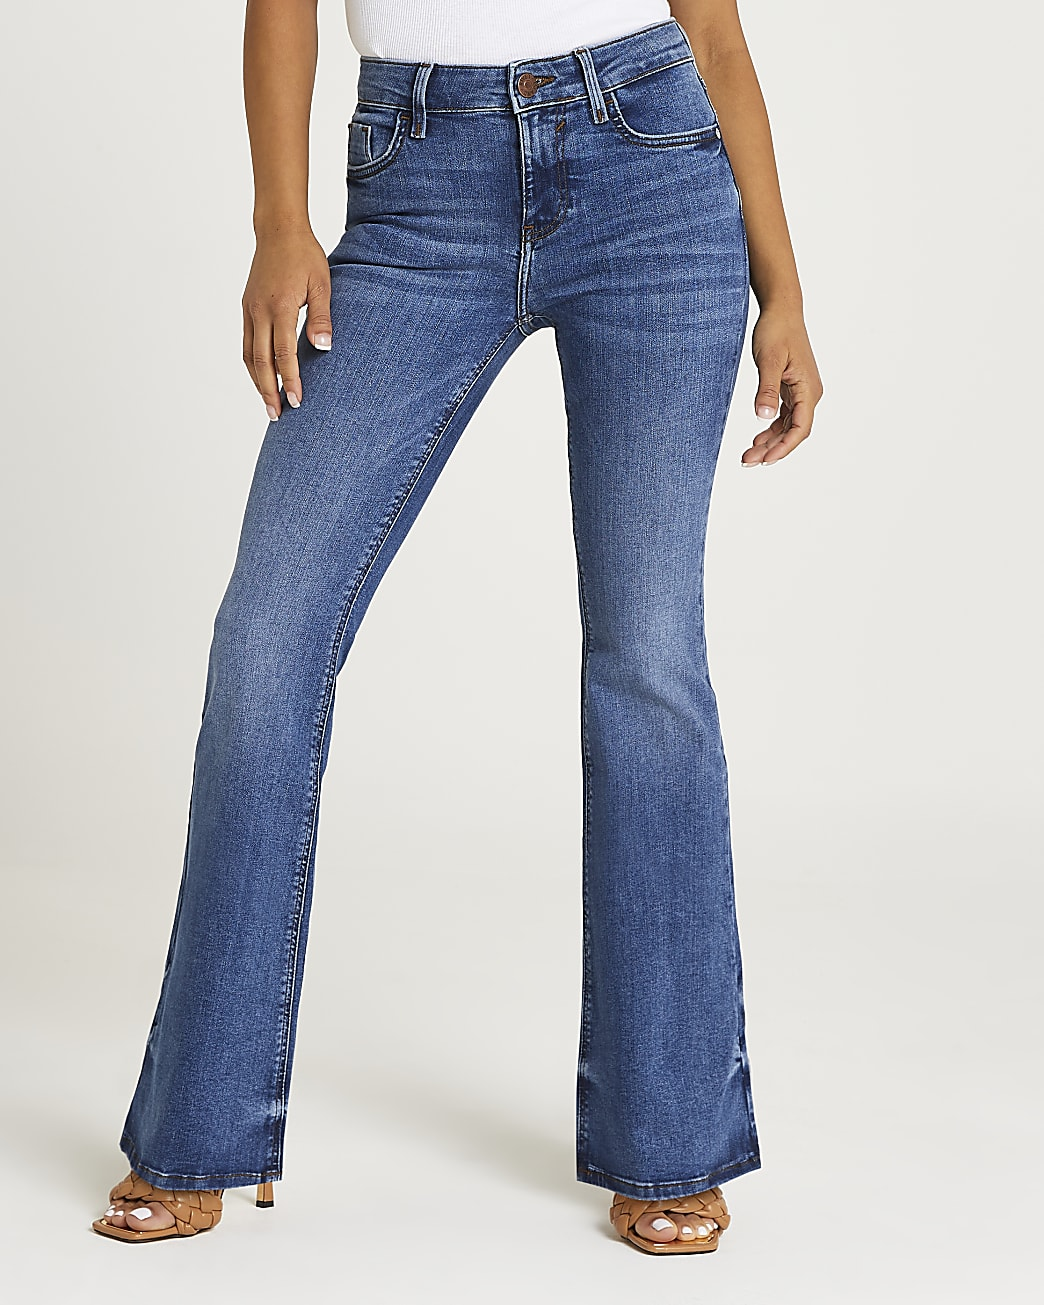 Petite blue mid rise flared jeans